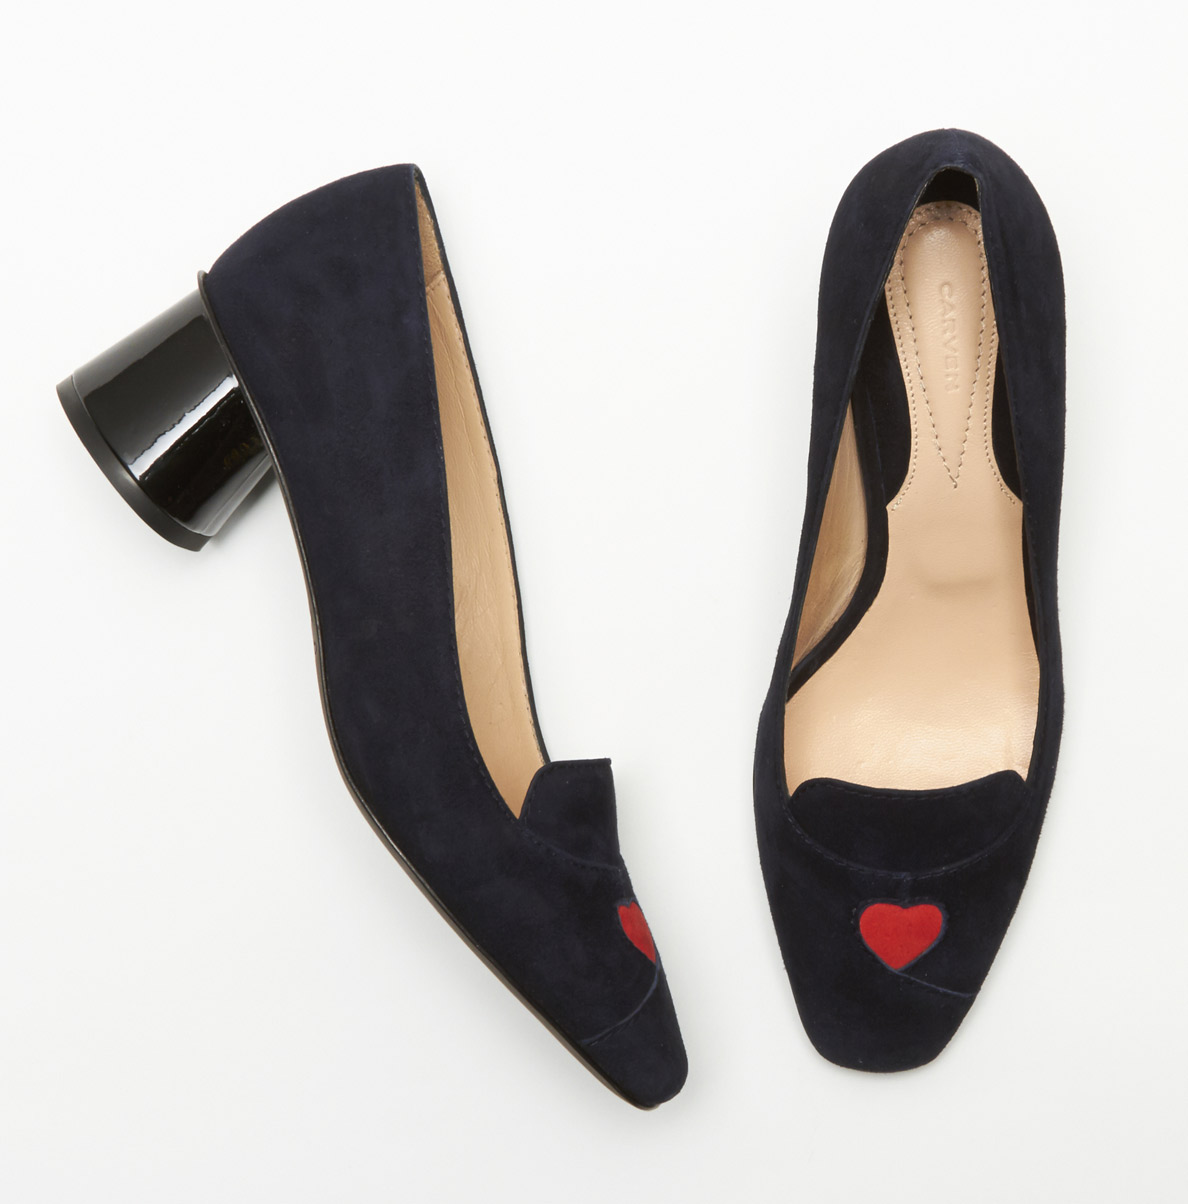 carven shoes Found: The Coolest Pair of Stylish (and Comfy!) Two Inch Heels By Carven